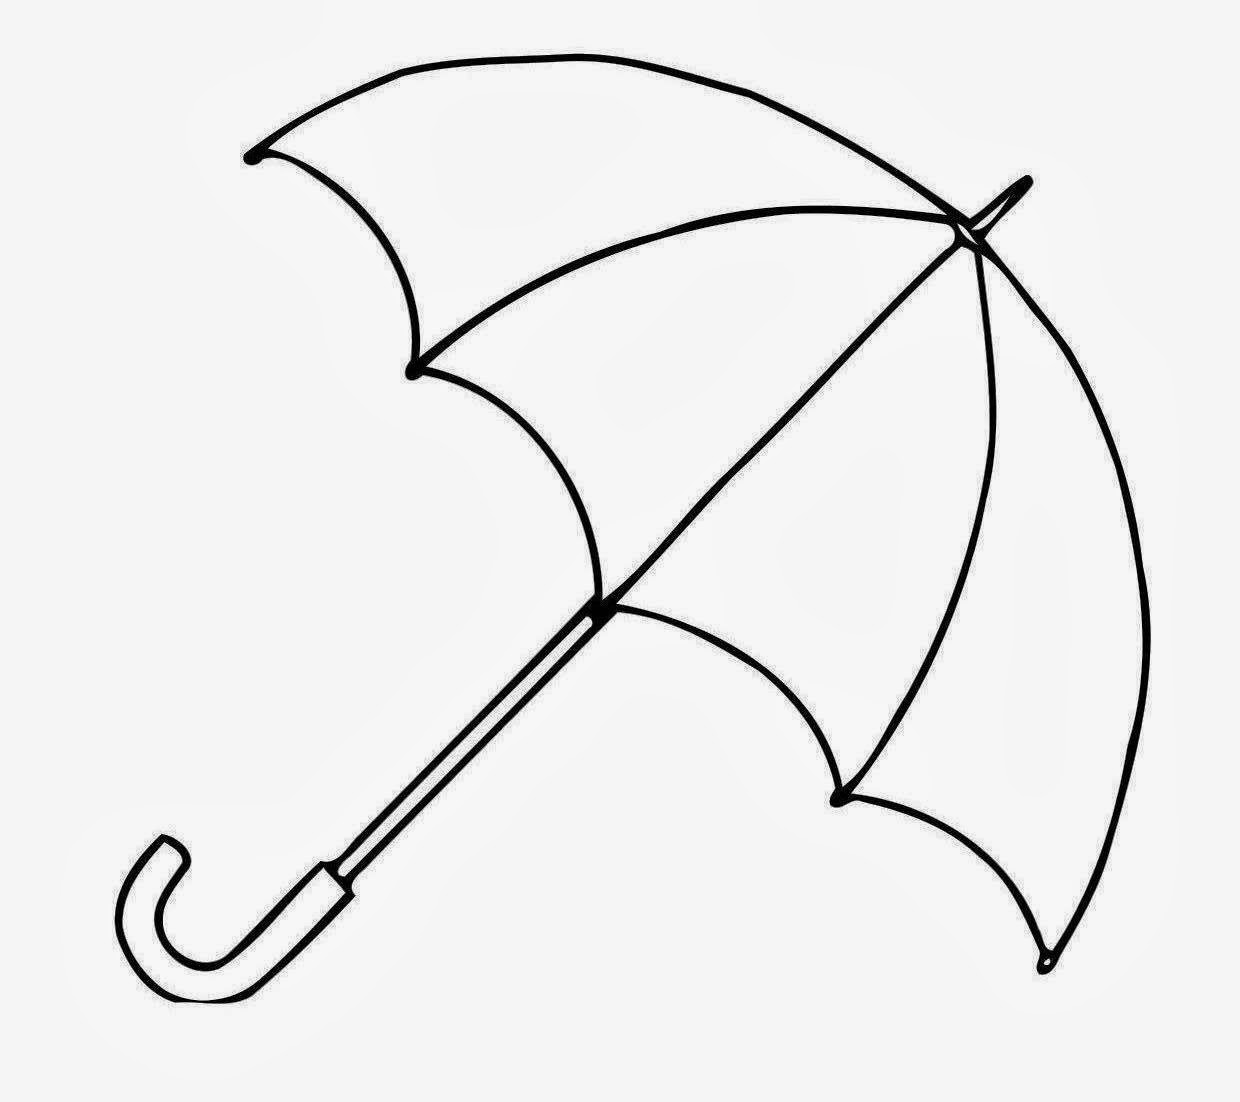 Cute Umbrella Drawing - Free Clipart Images